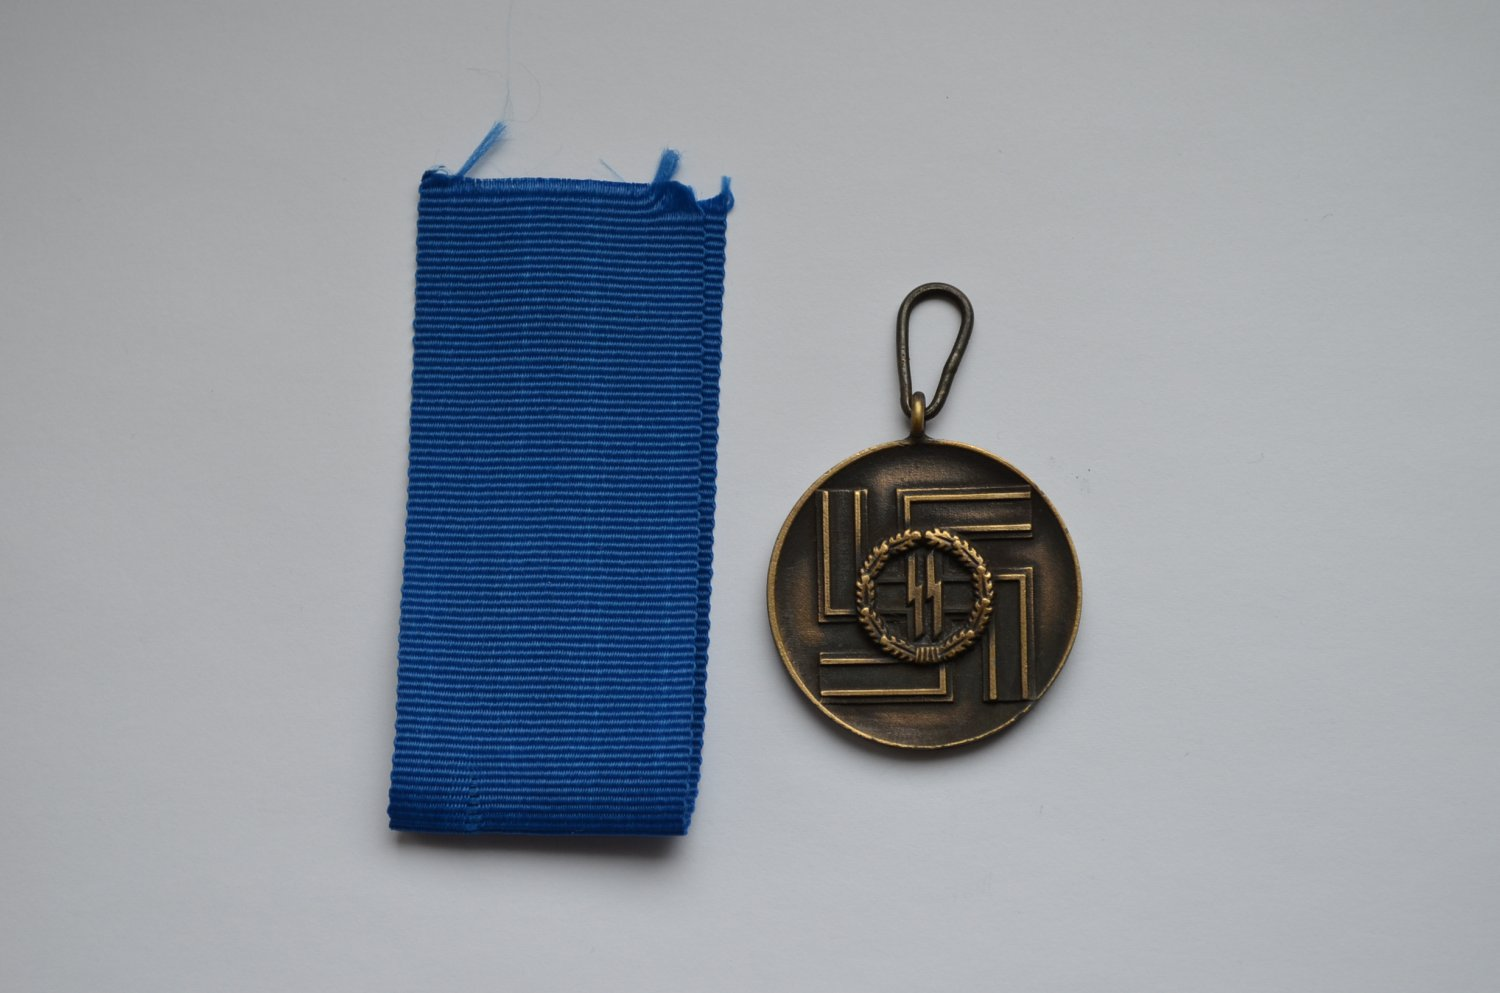 WWII GERMAN MEDAL LONG SERVICE AWARDS OF THE SS WAFFEN SS 8 YEARS